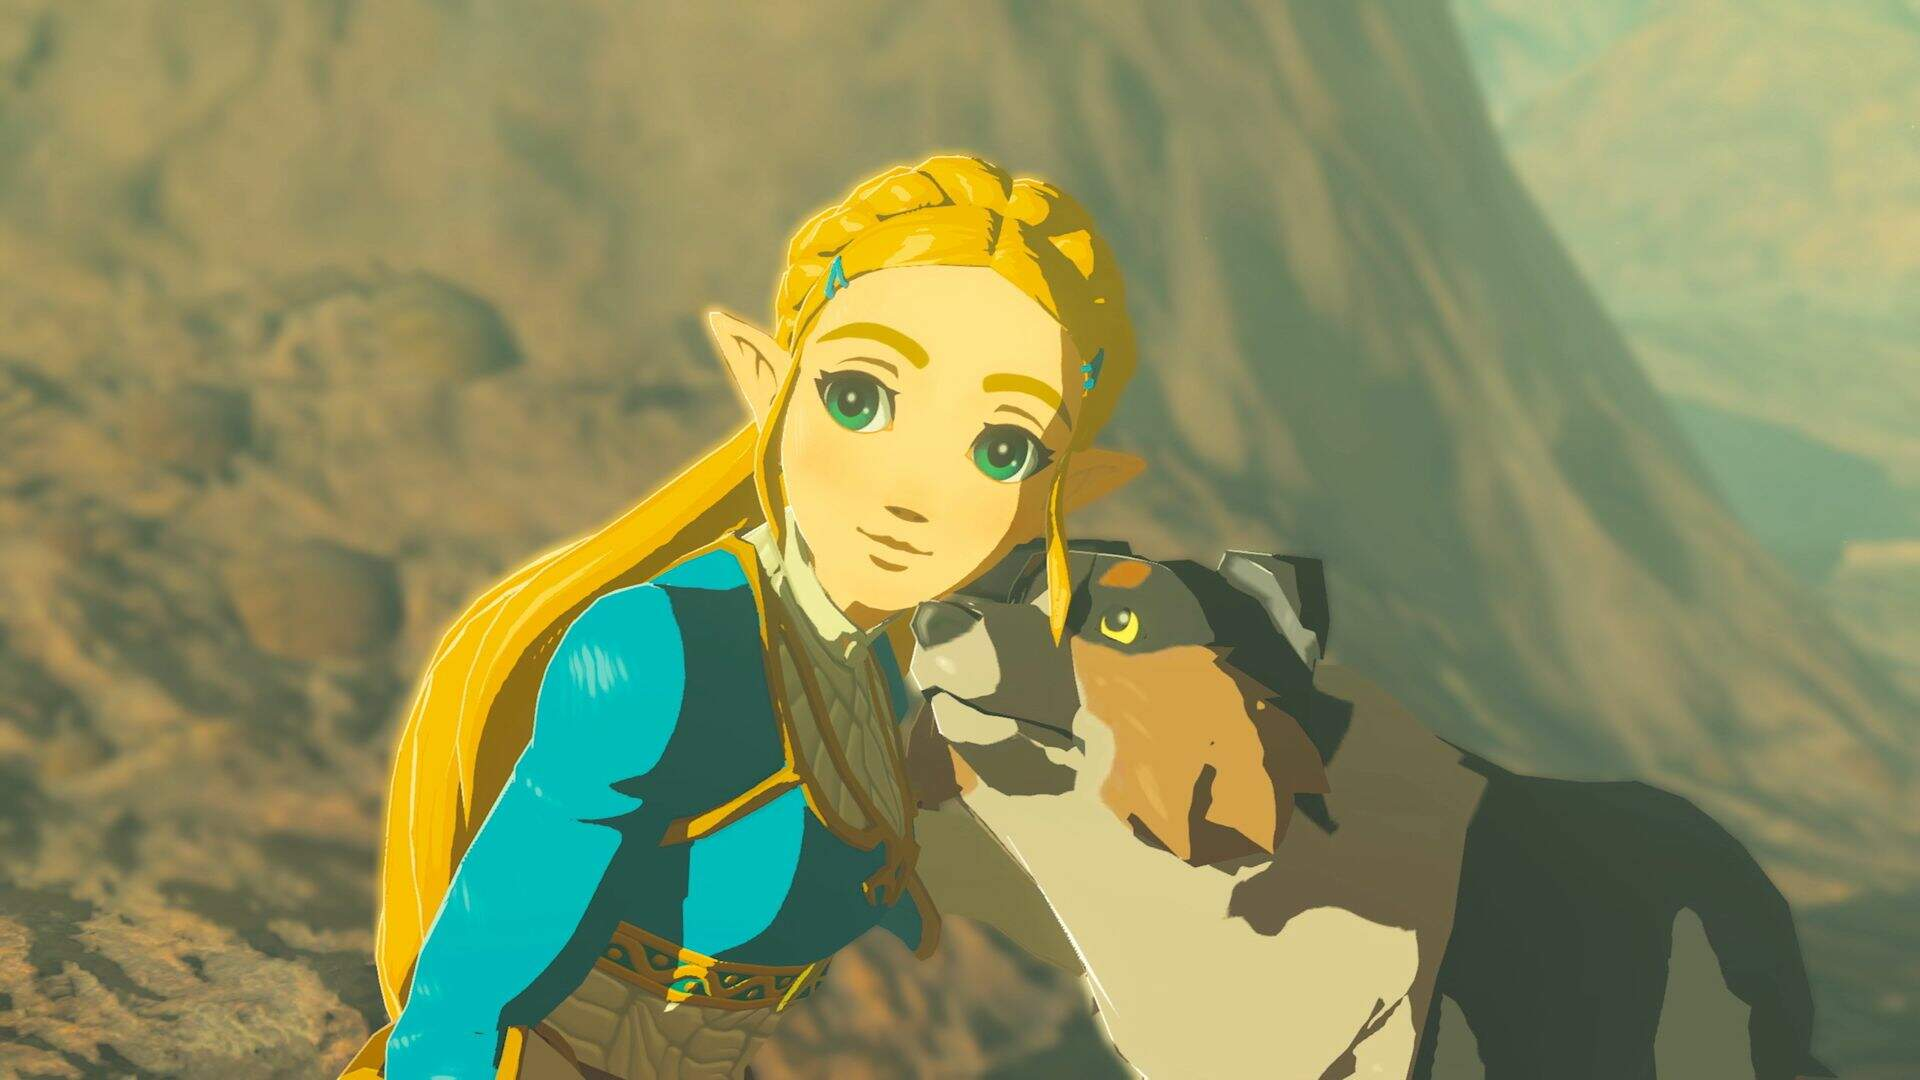 Tired: Speedrunning to Ganon in Breath of the Wild. Wired: Speed-Feeding All of Its Dogs